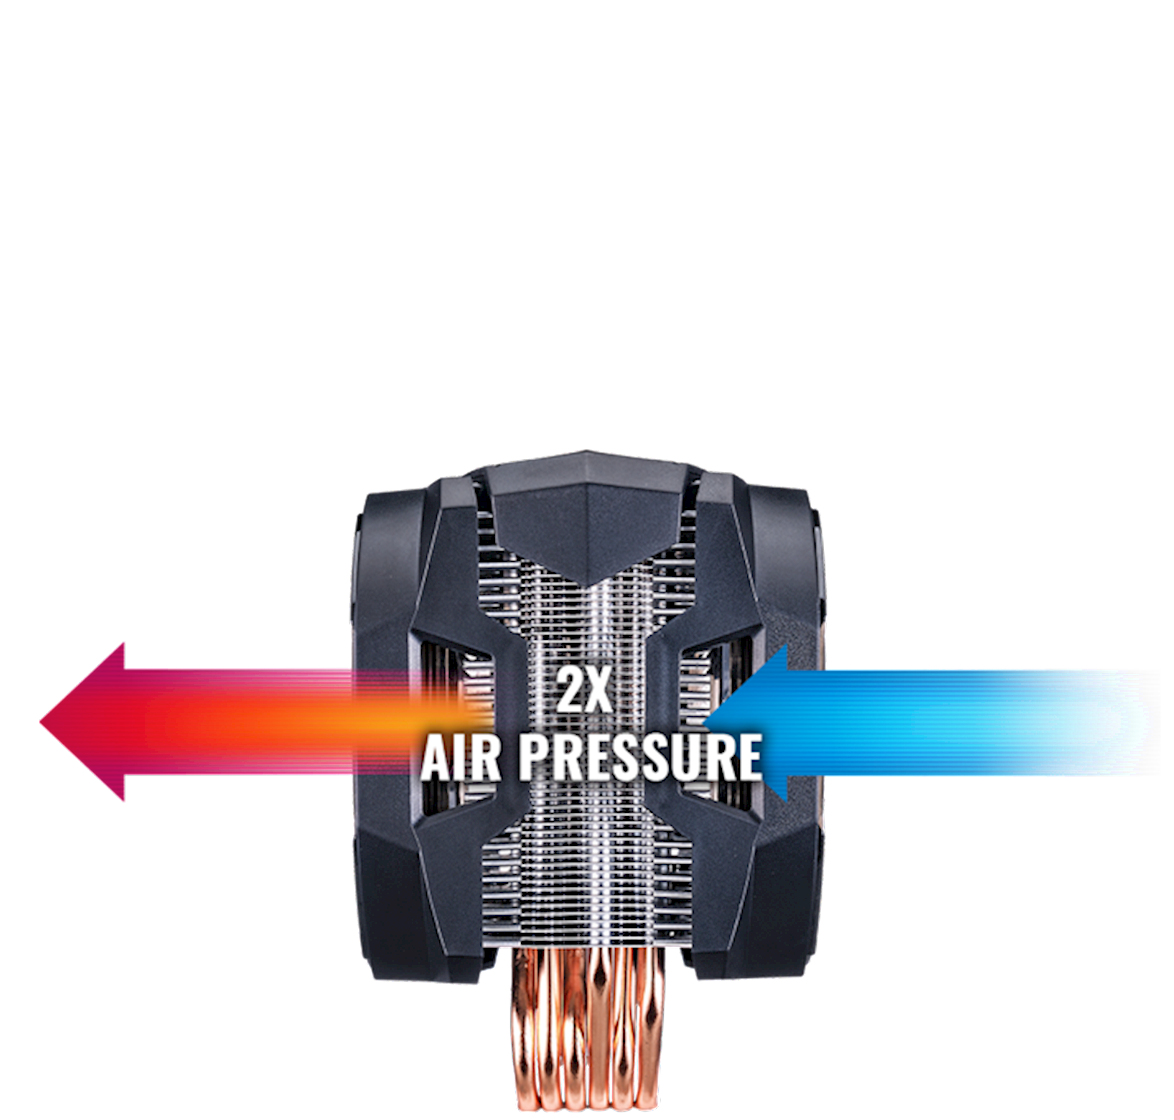 Accelerated Air Pressure To Beat The Heat